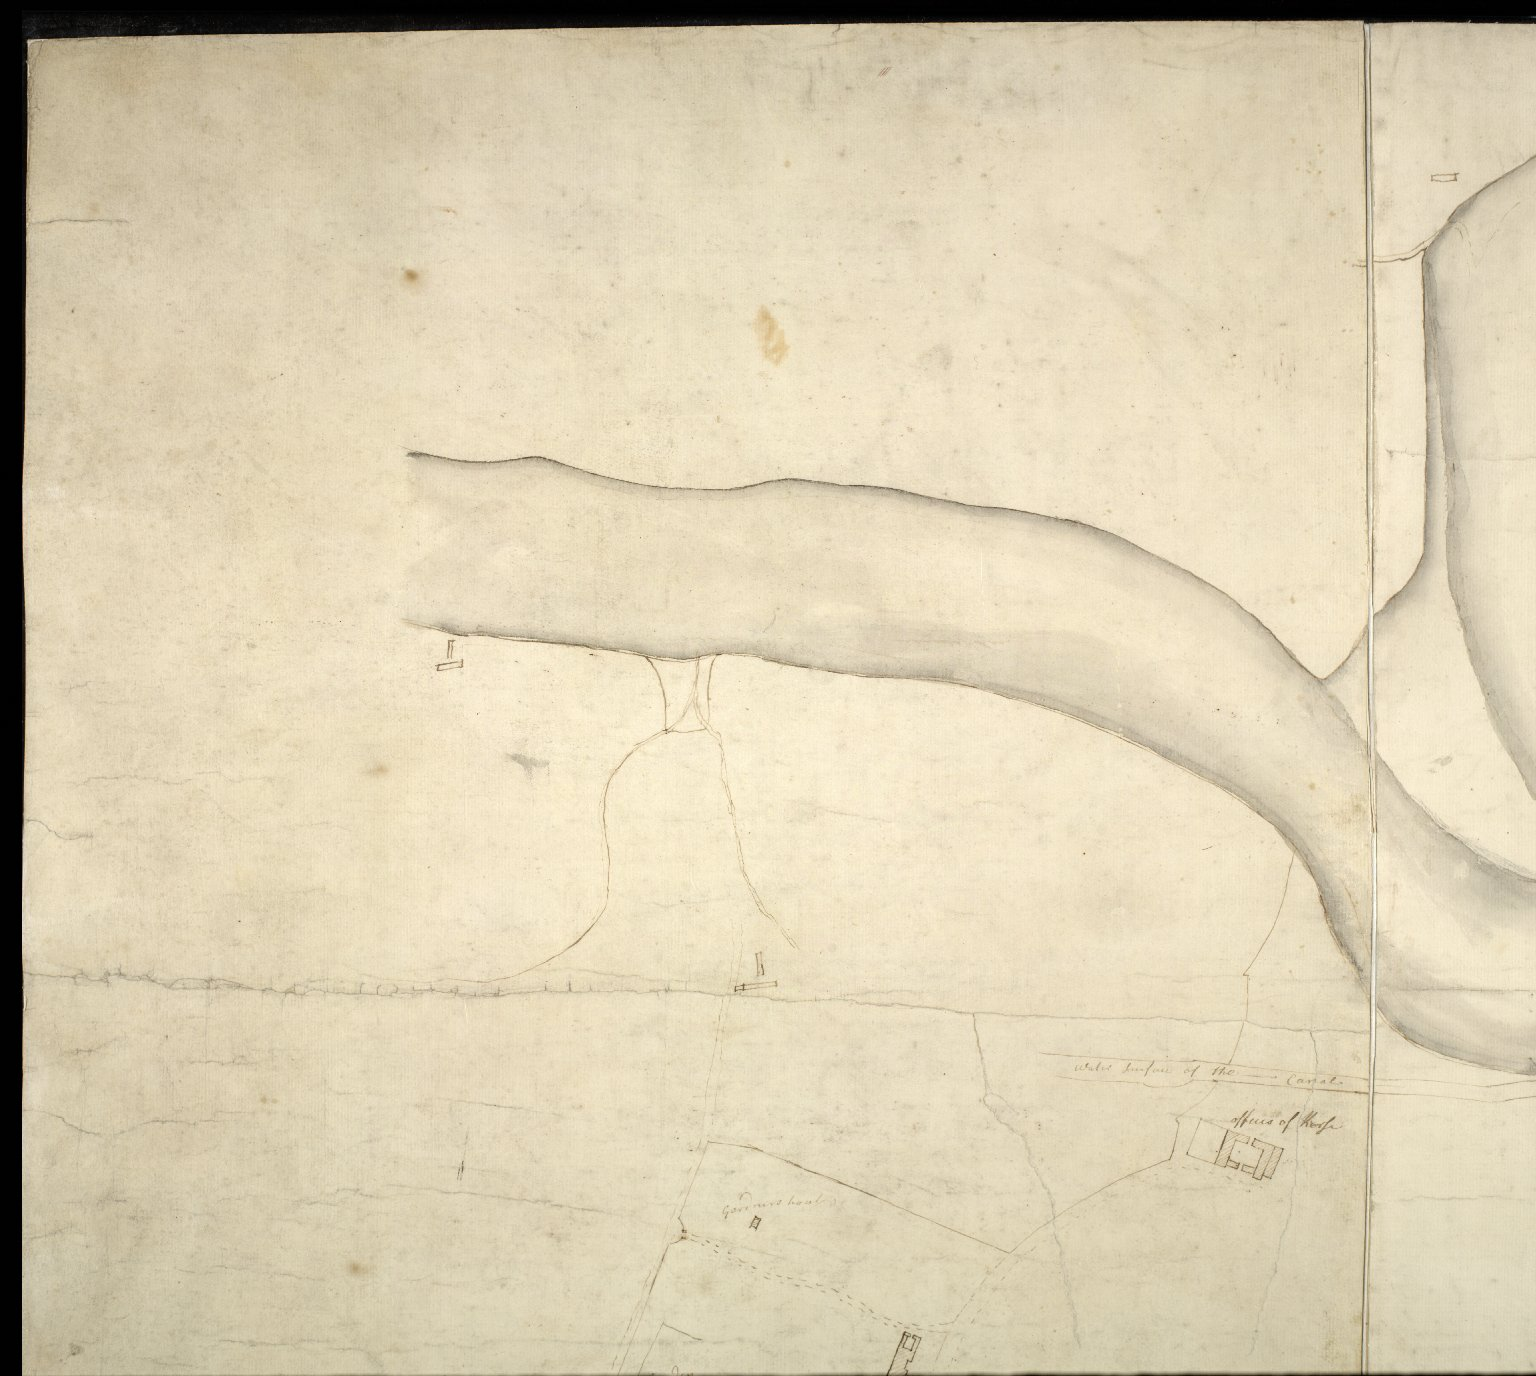 [Map of the River Carron at Grangemouth] [1 of 4]